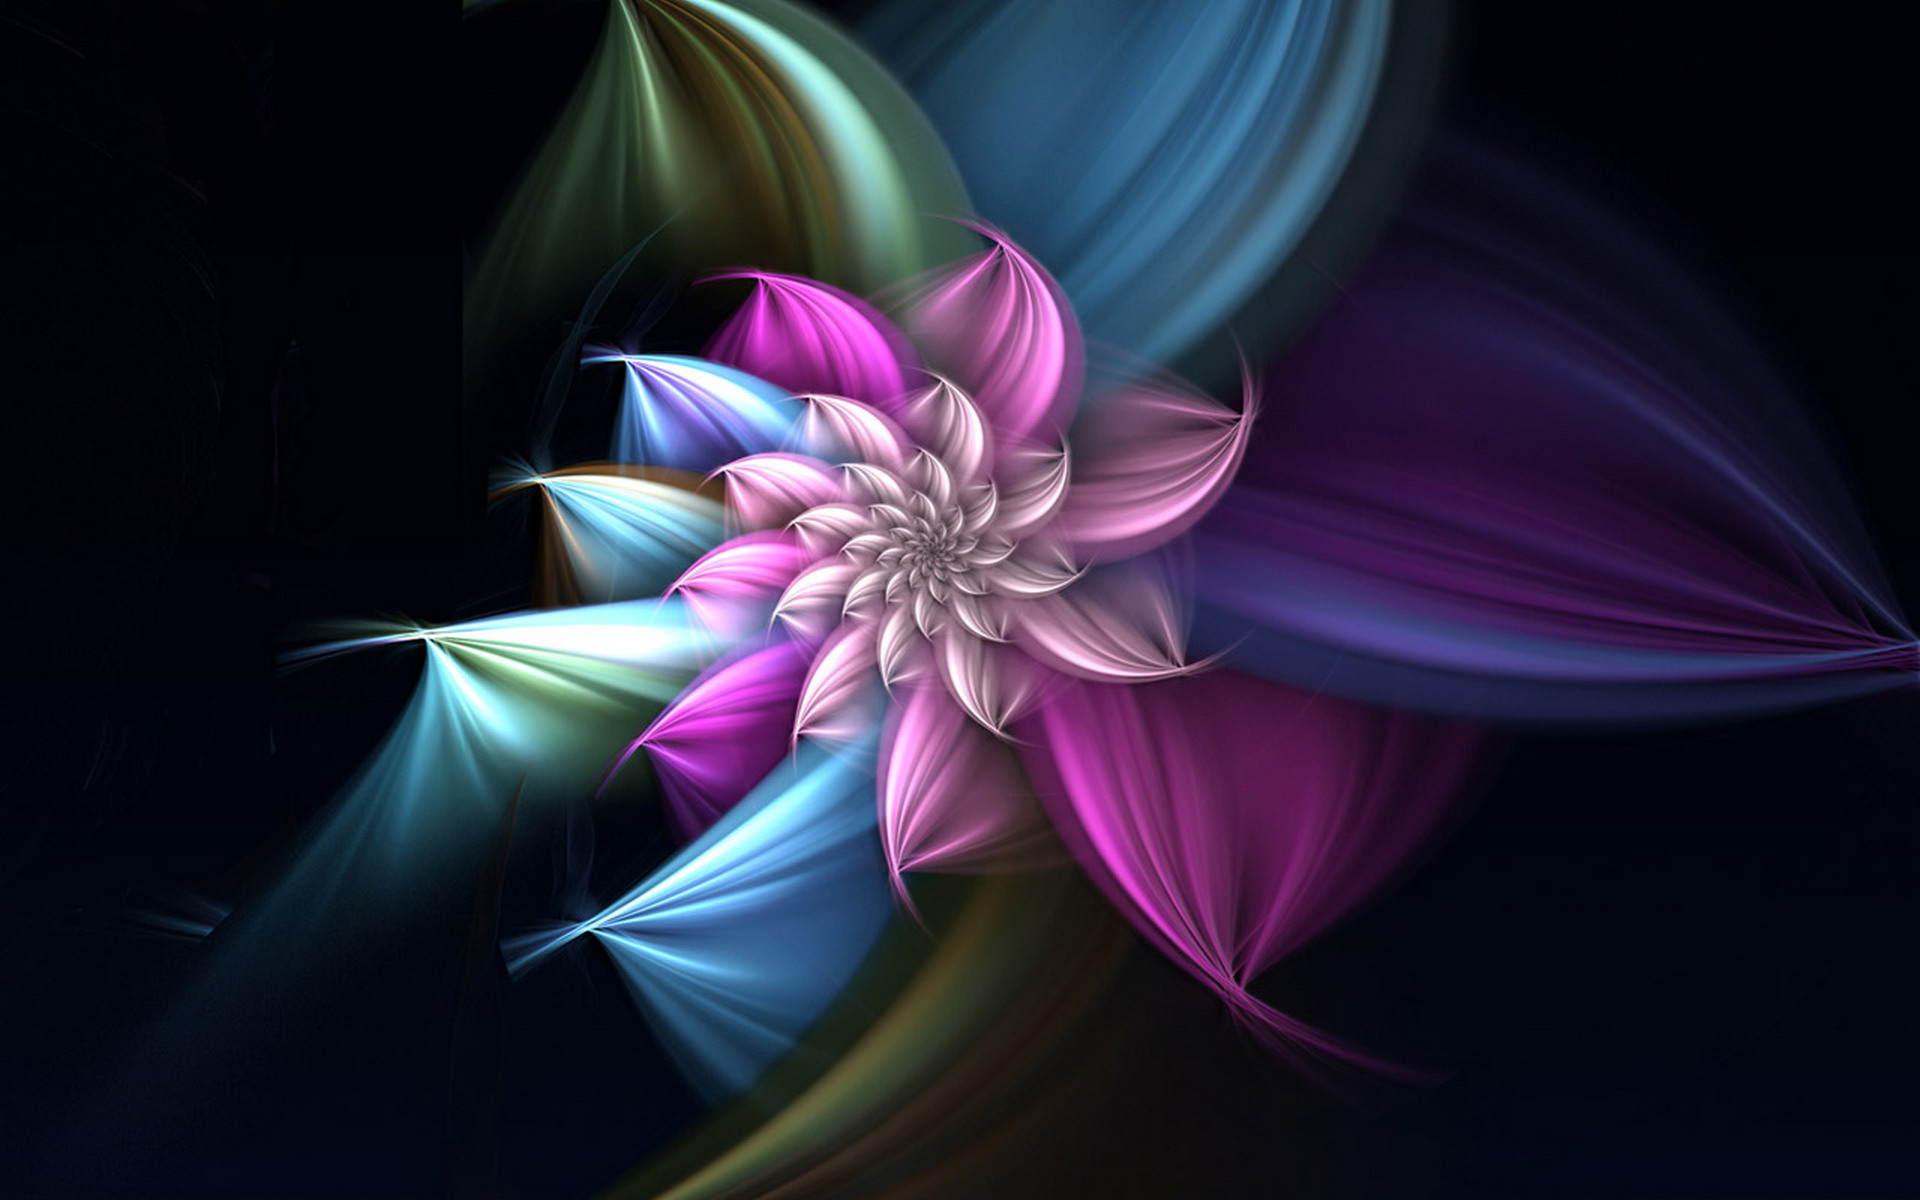 Abstract Design Flower Wallpaper: Fractal Full HD Wallpaper And Background Image